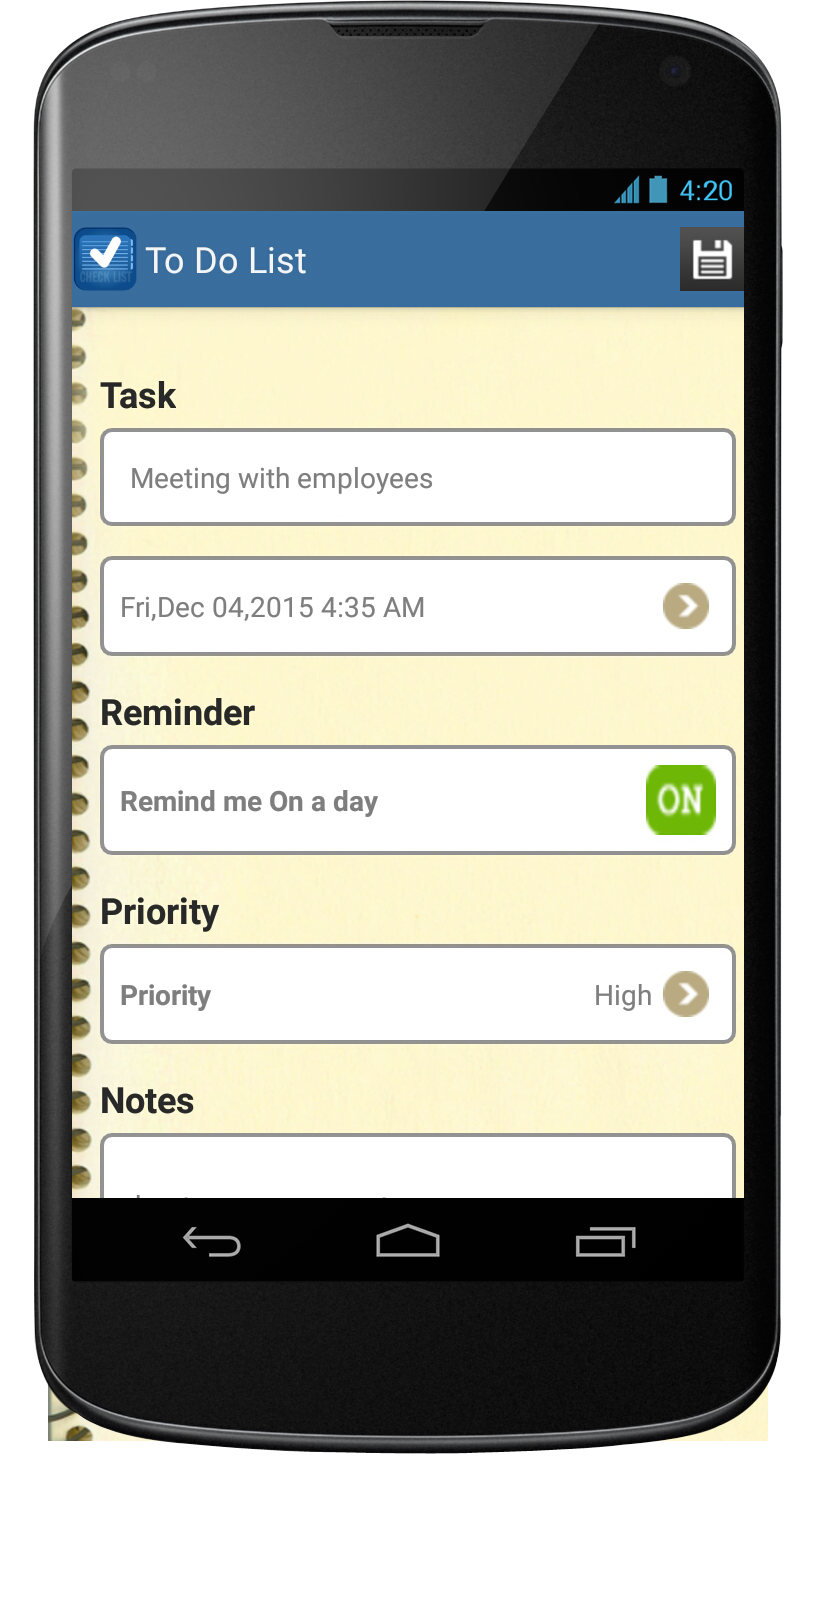 To Do List Android App